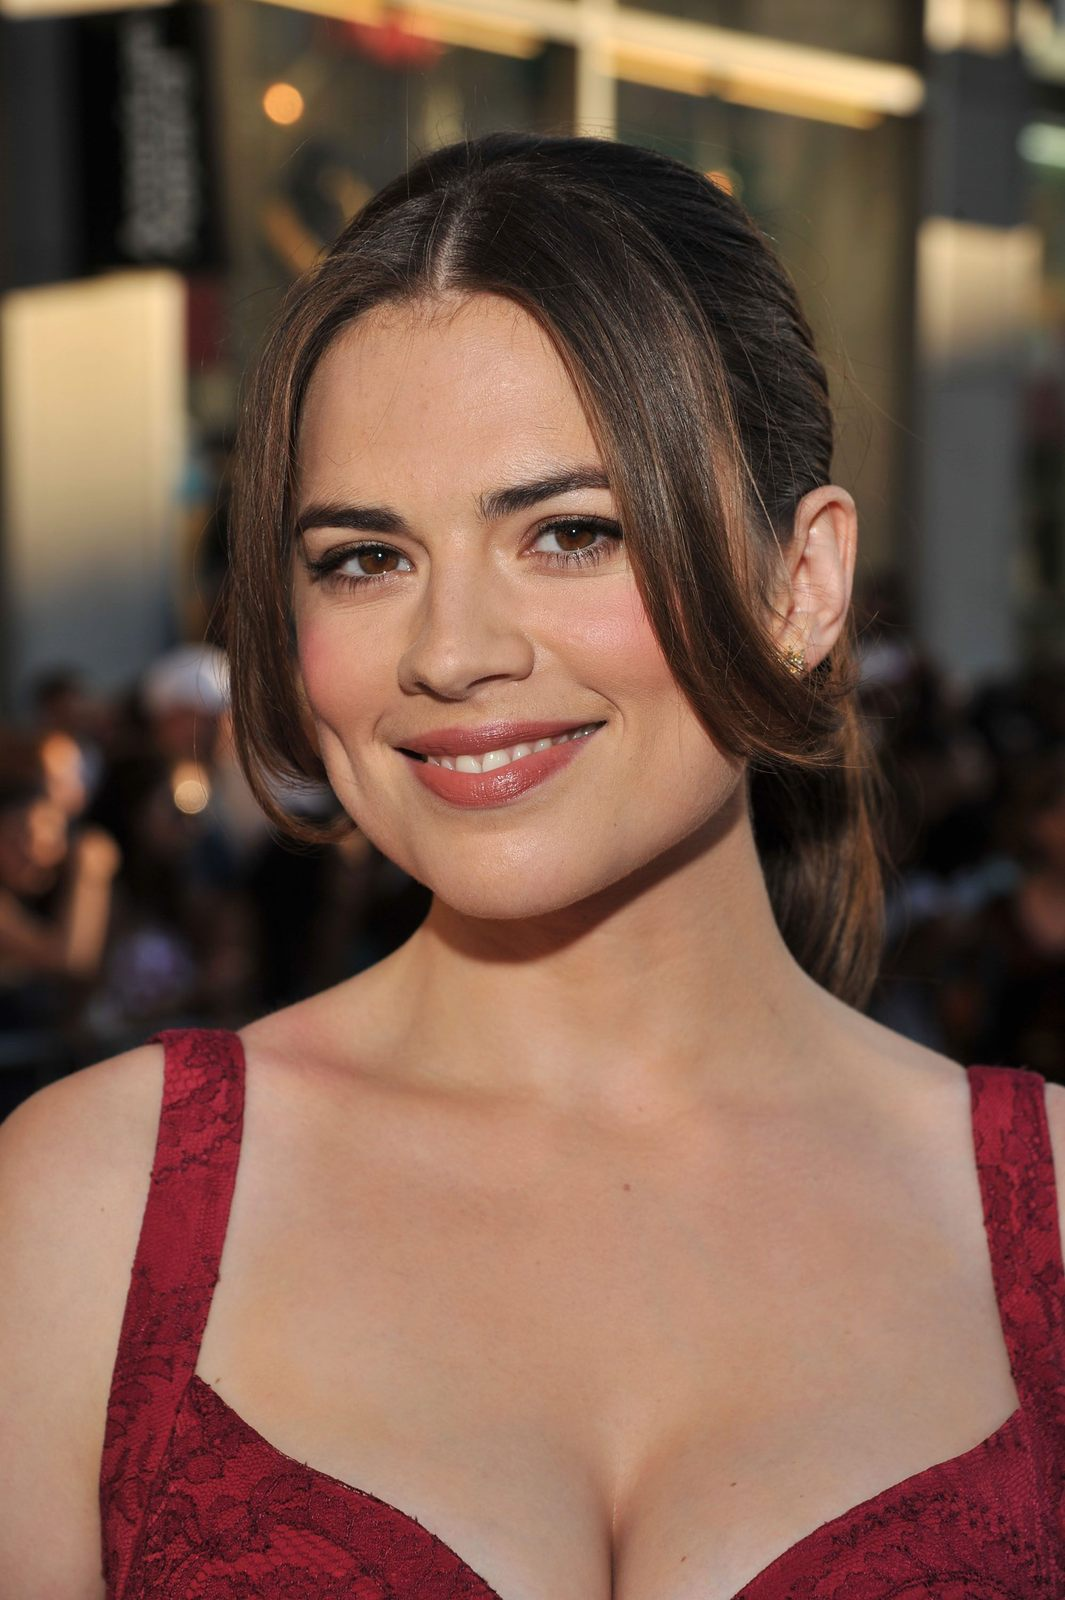 CELEBRITIES: Hayley Atwell Flaunting Her Incredible Cleavage..!!